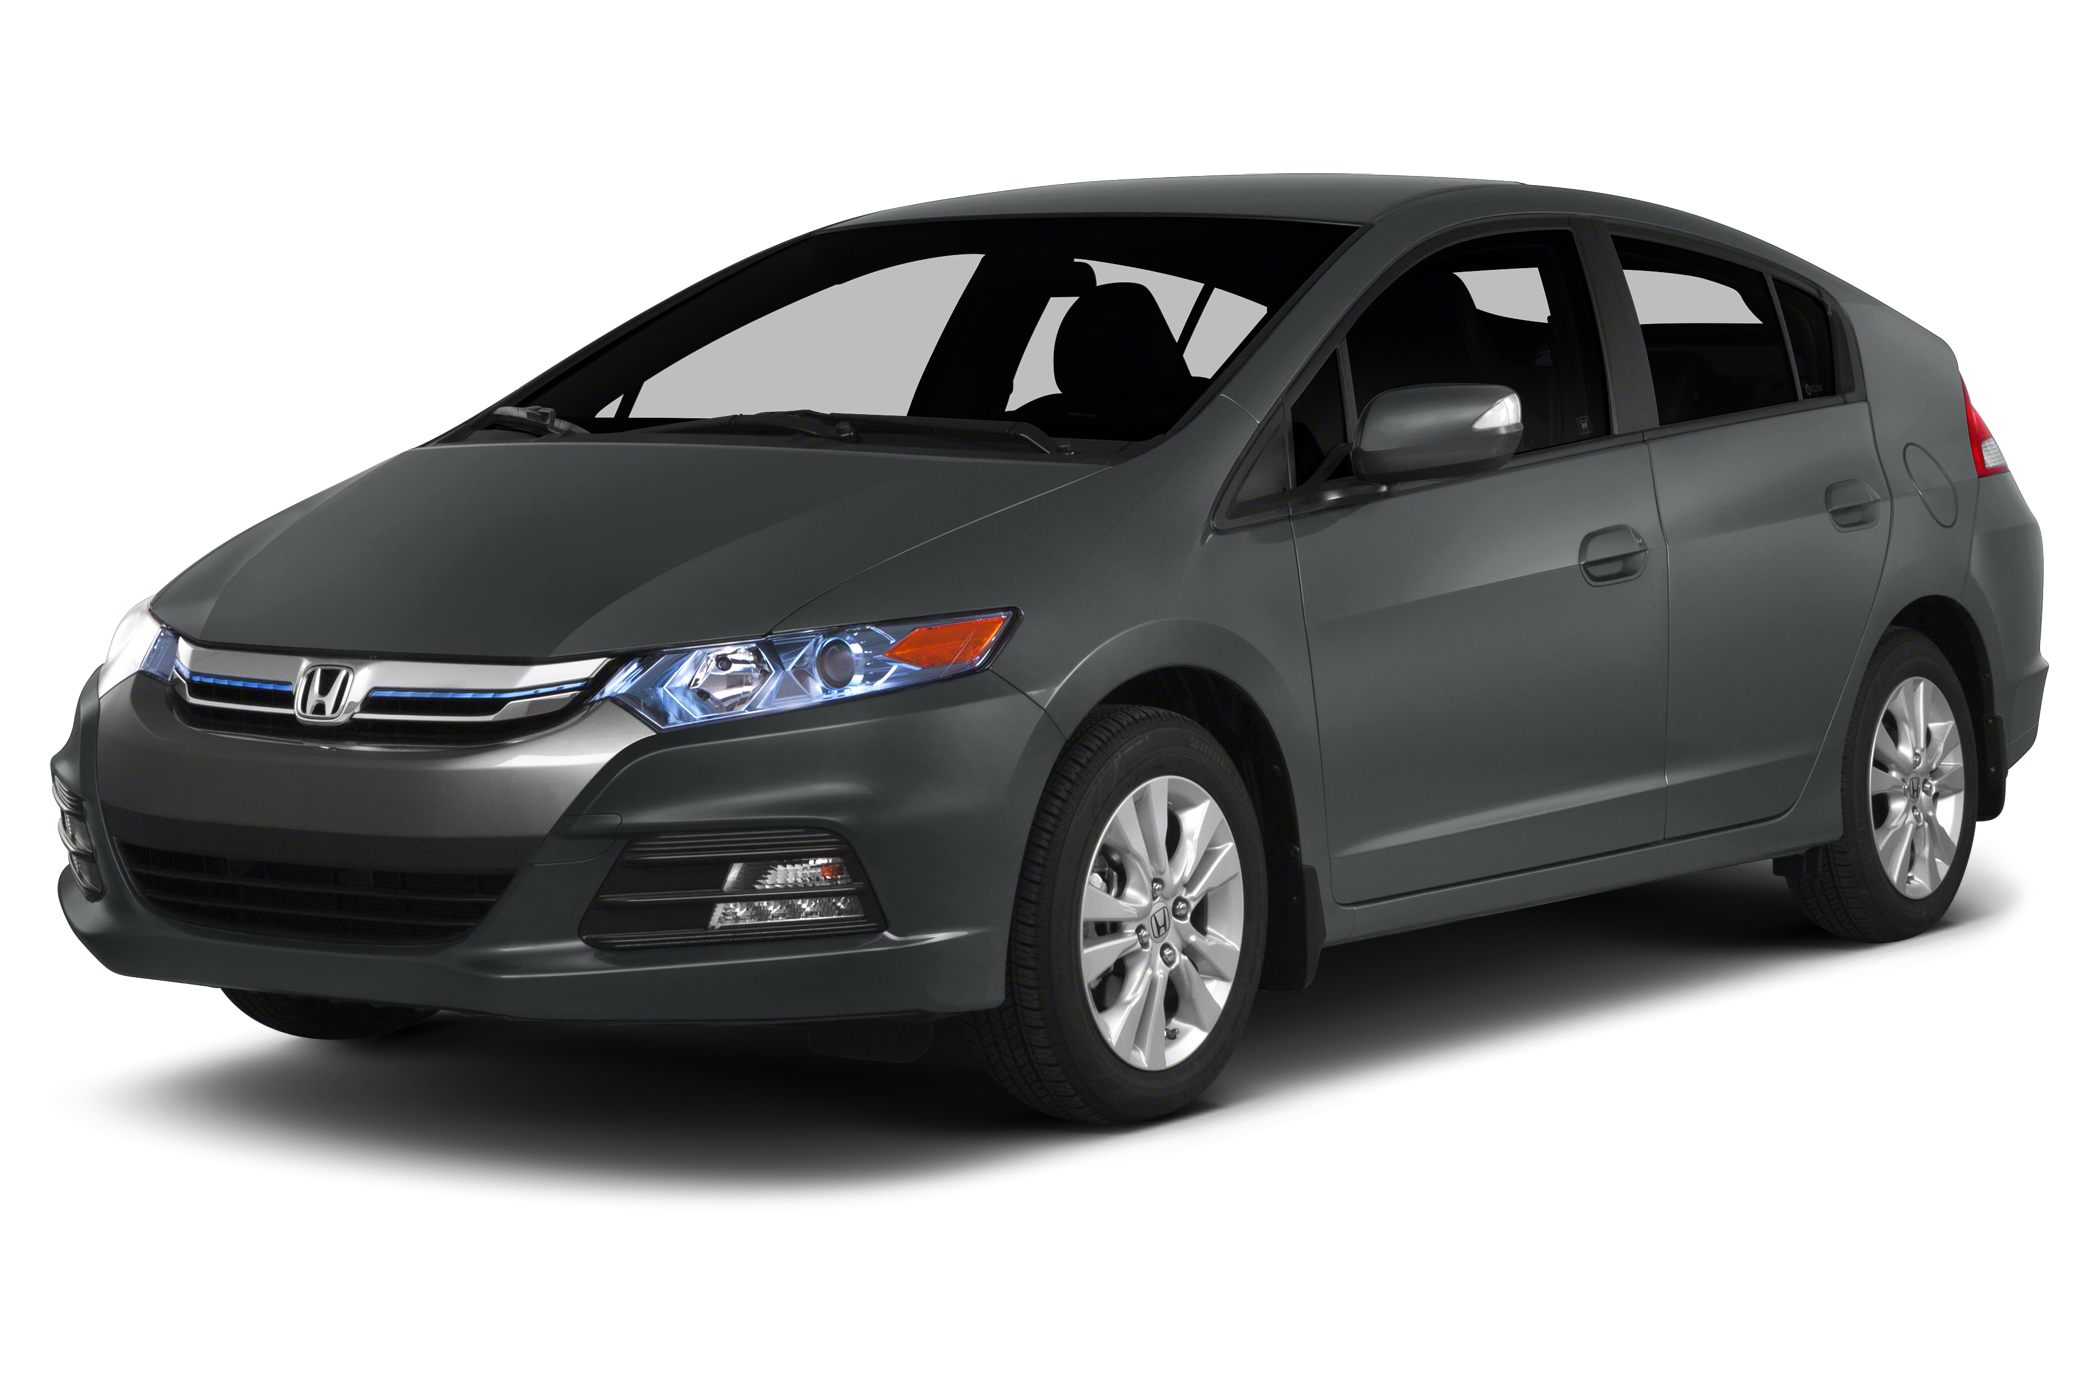 Used Cars for 3000 Beautiful New and Used Cars for Sale In Melbourne Fl with 3 000 Miles